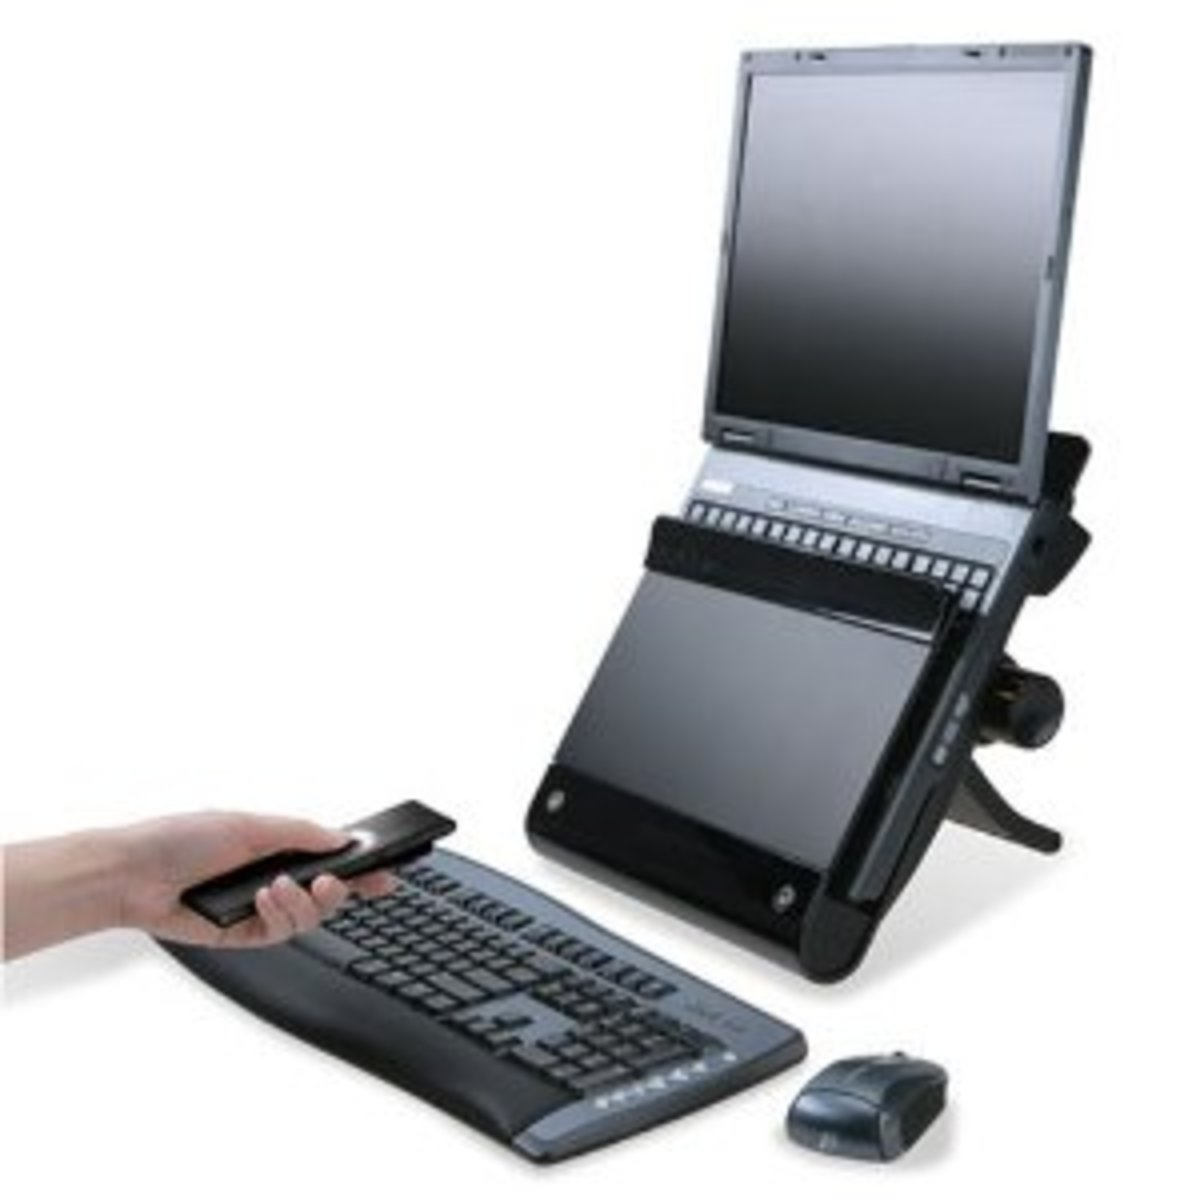 Enhance Your Computing Experience with a Laptop Docking Station